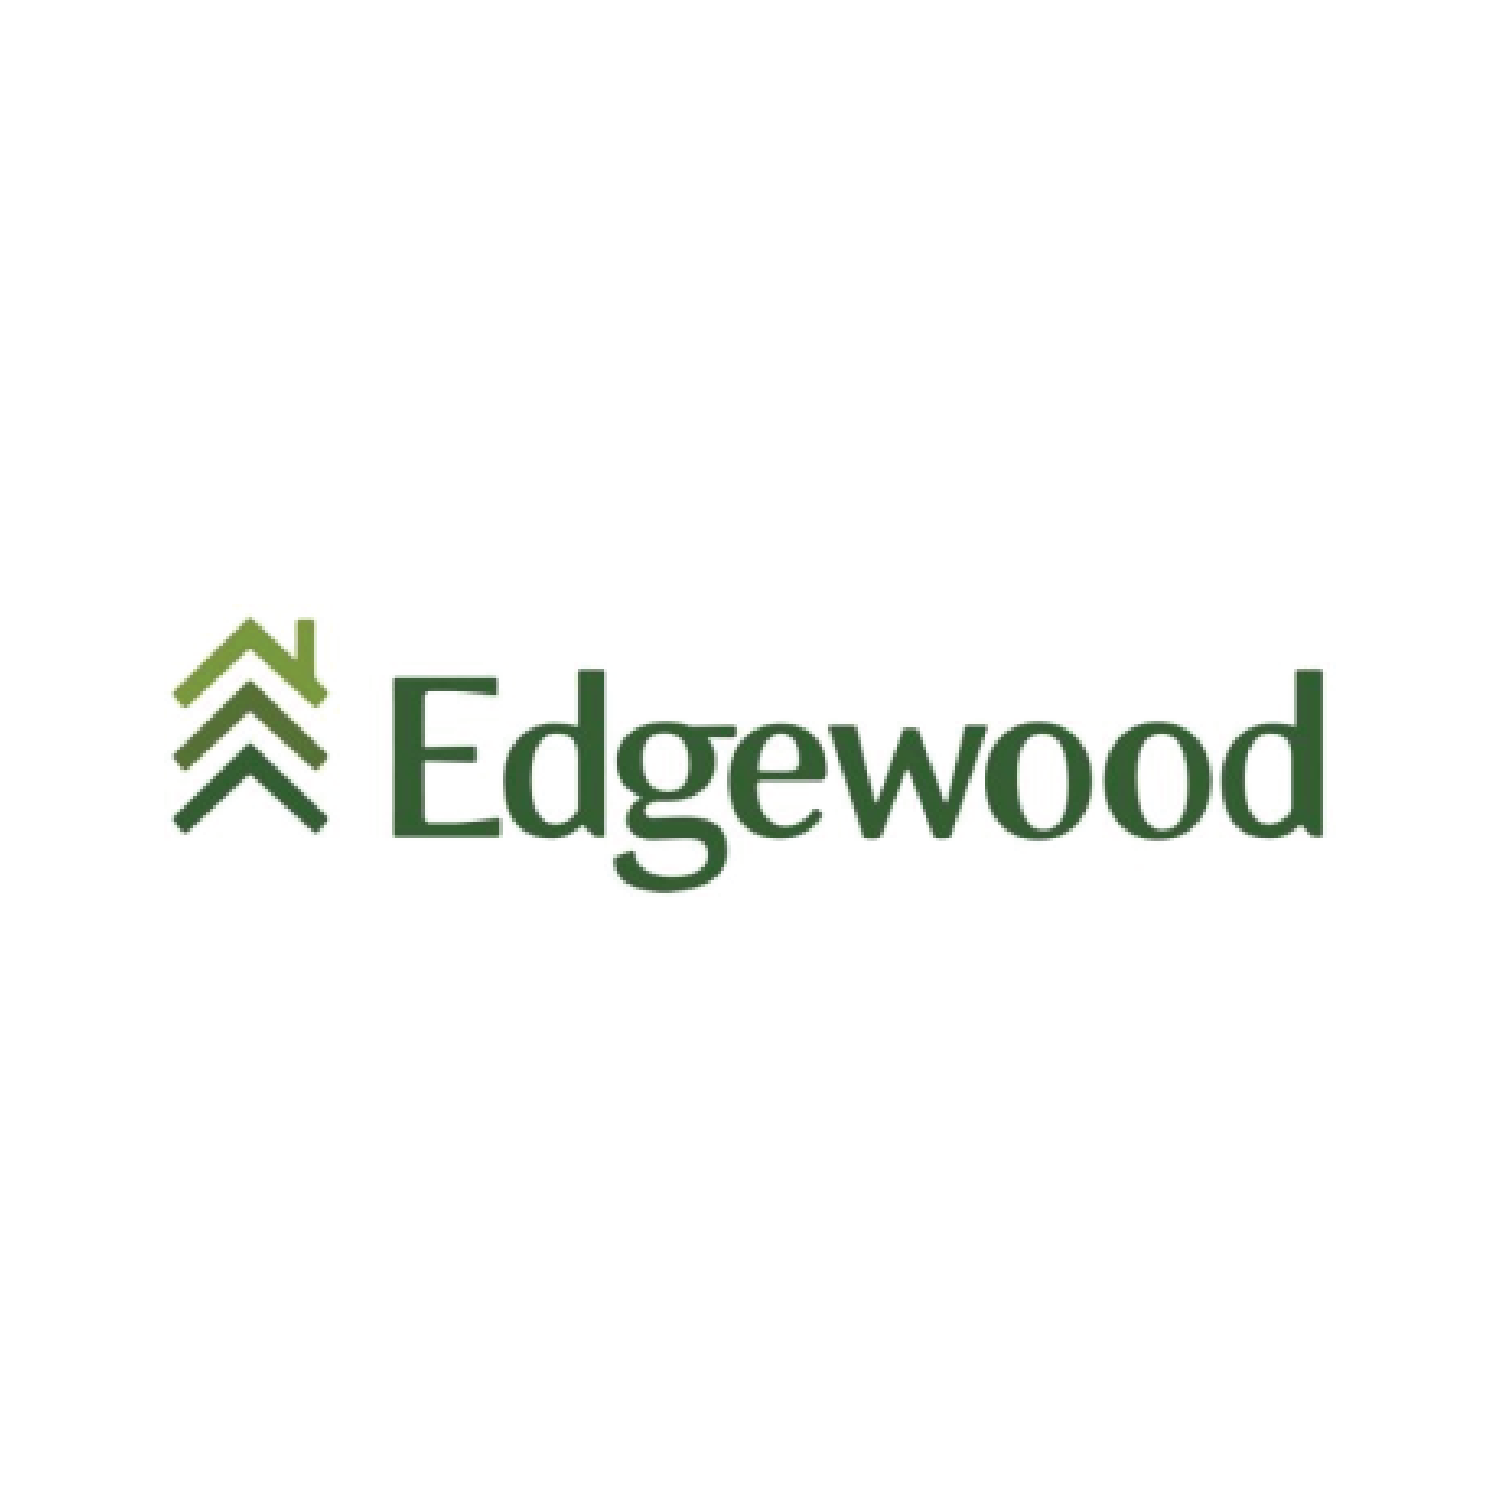 Edgewood   322 Demers Ave Grand Forks, ND 701-738-2000